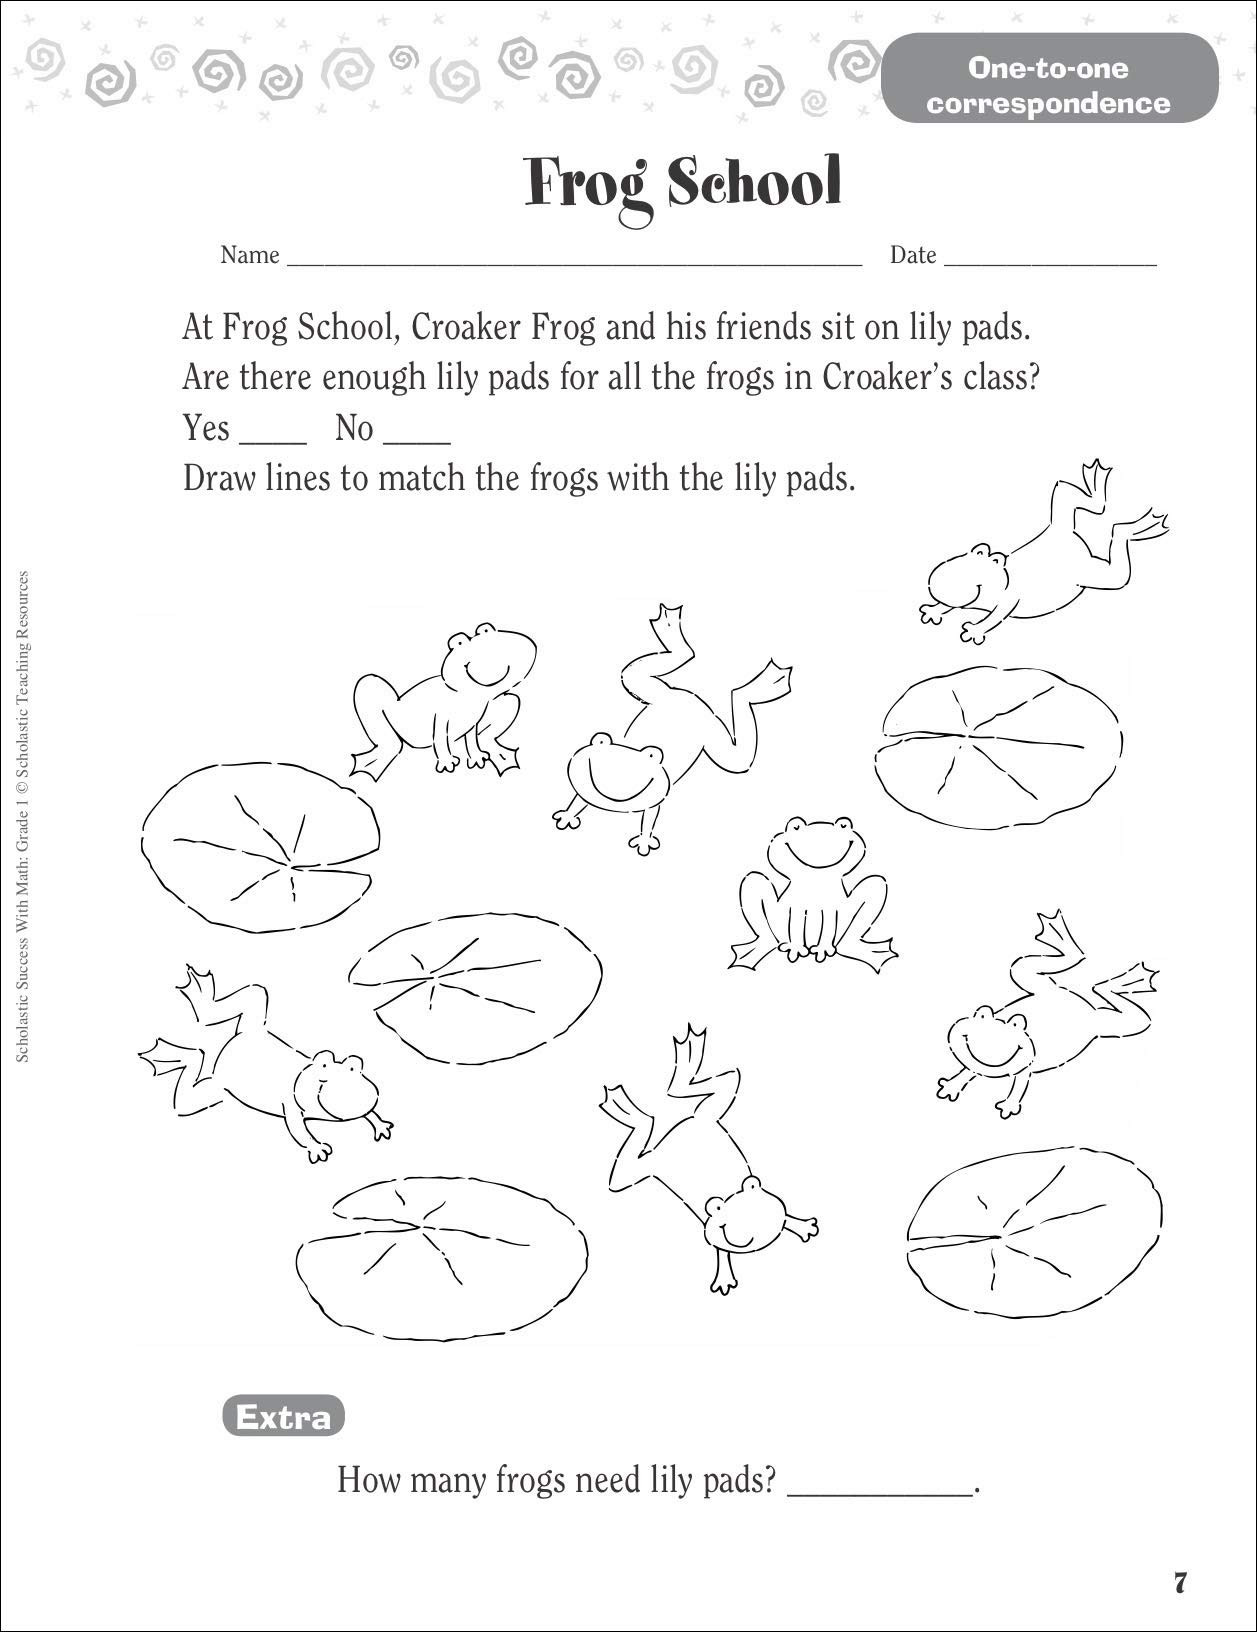 Dol 5th Grade Worksheet Worksheet Ideas toddler Worksheets are 3rd Grade Dol